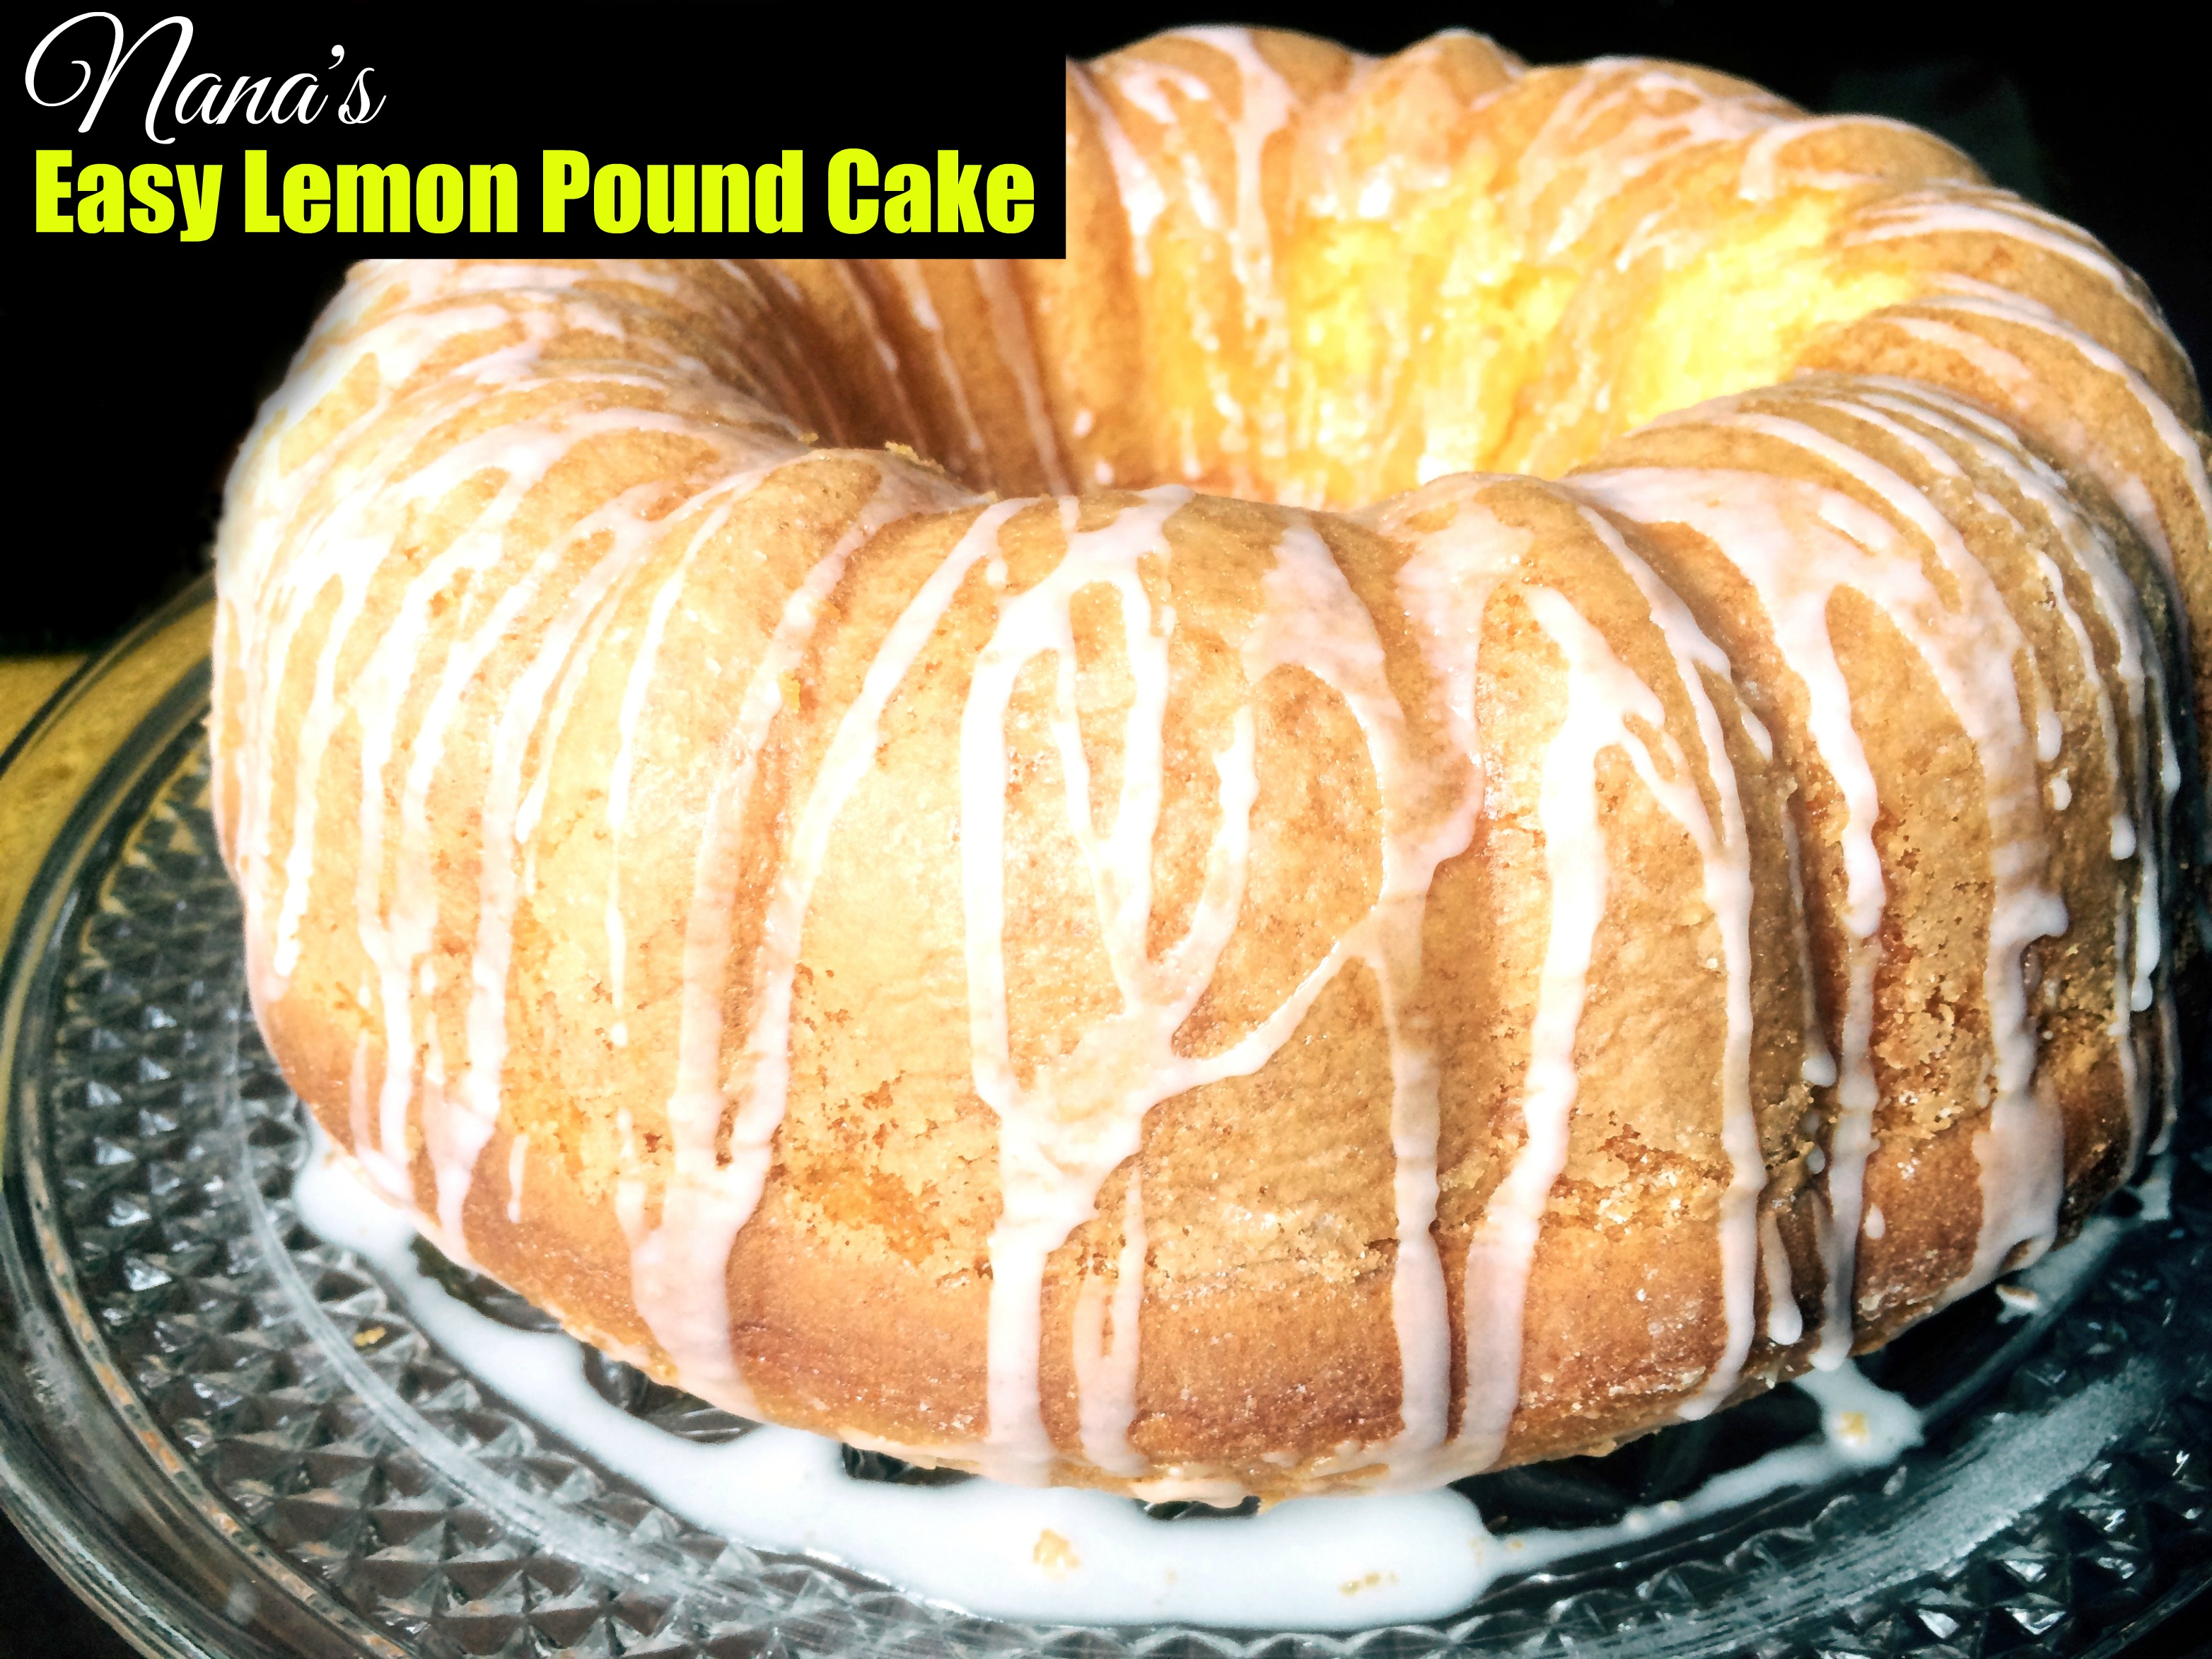 Nana's Easy Lemon Pound Cake - Aunt Bee's Recipes